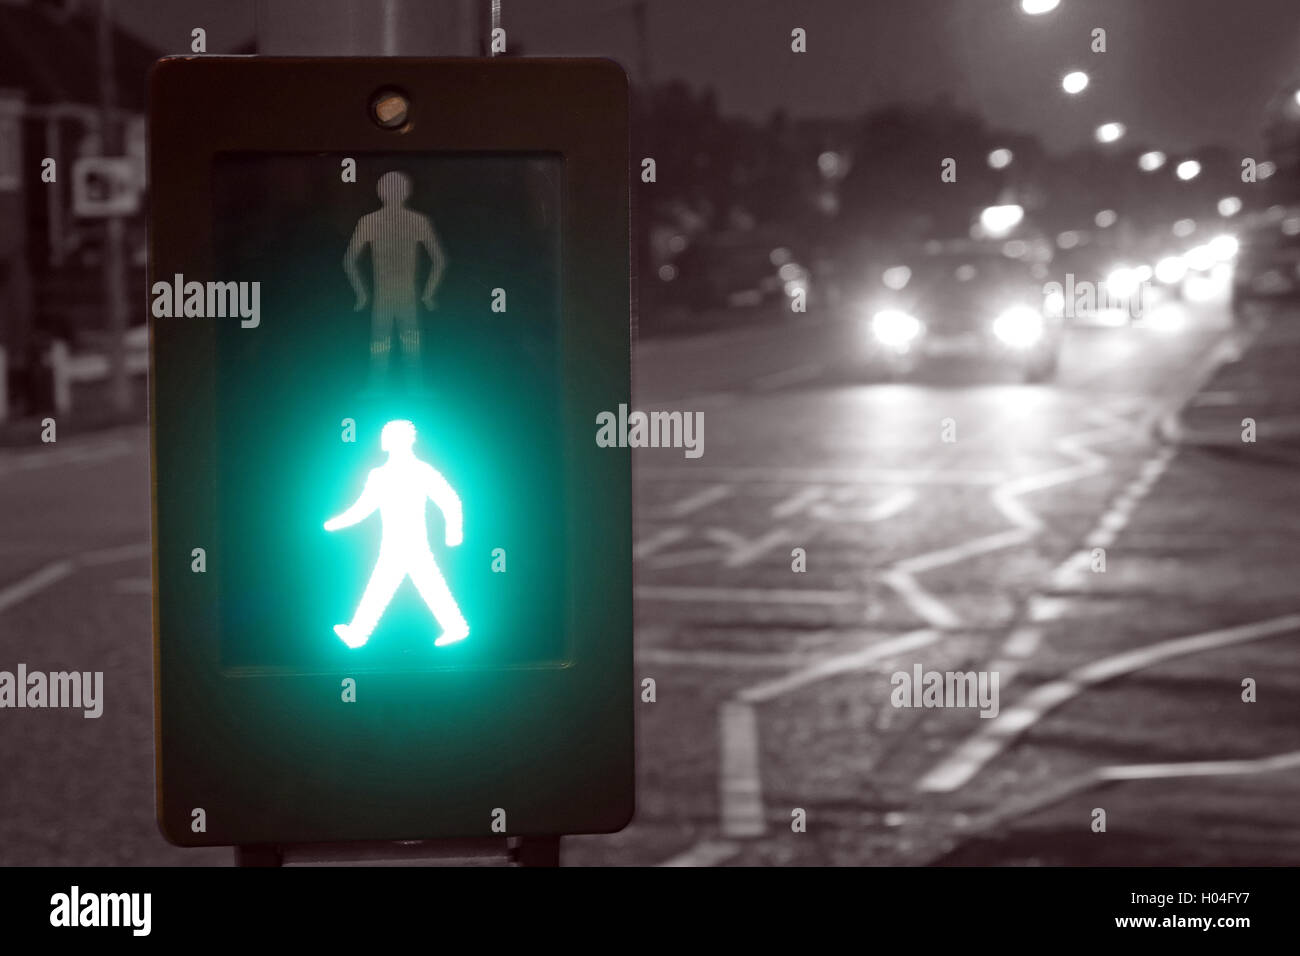 Pelican Crossing with green man, safe to cross, England, UK Stock Photo